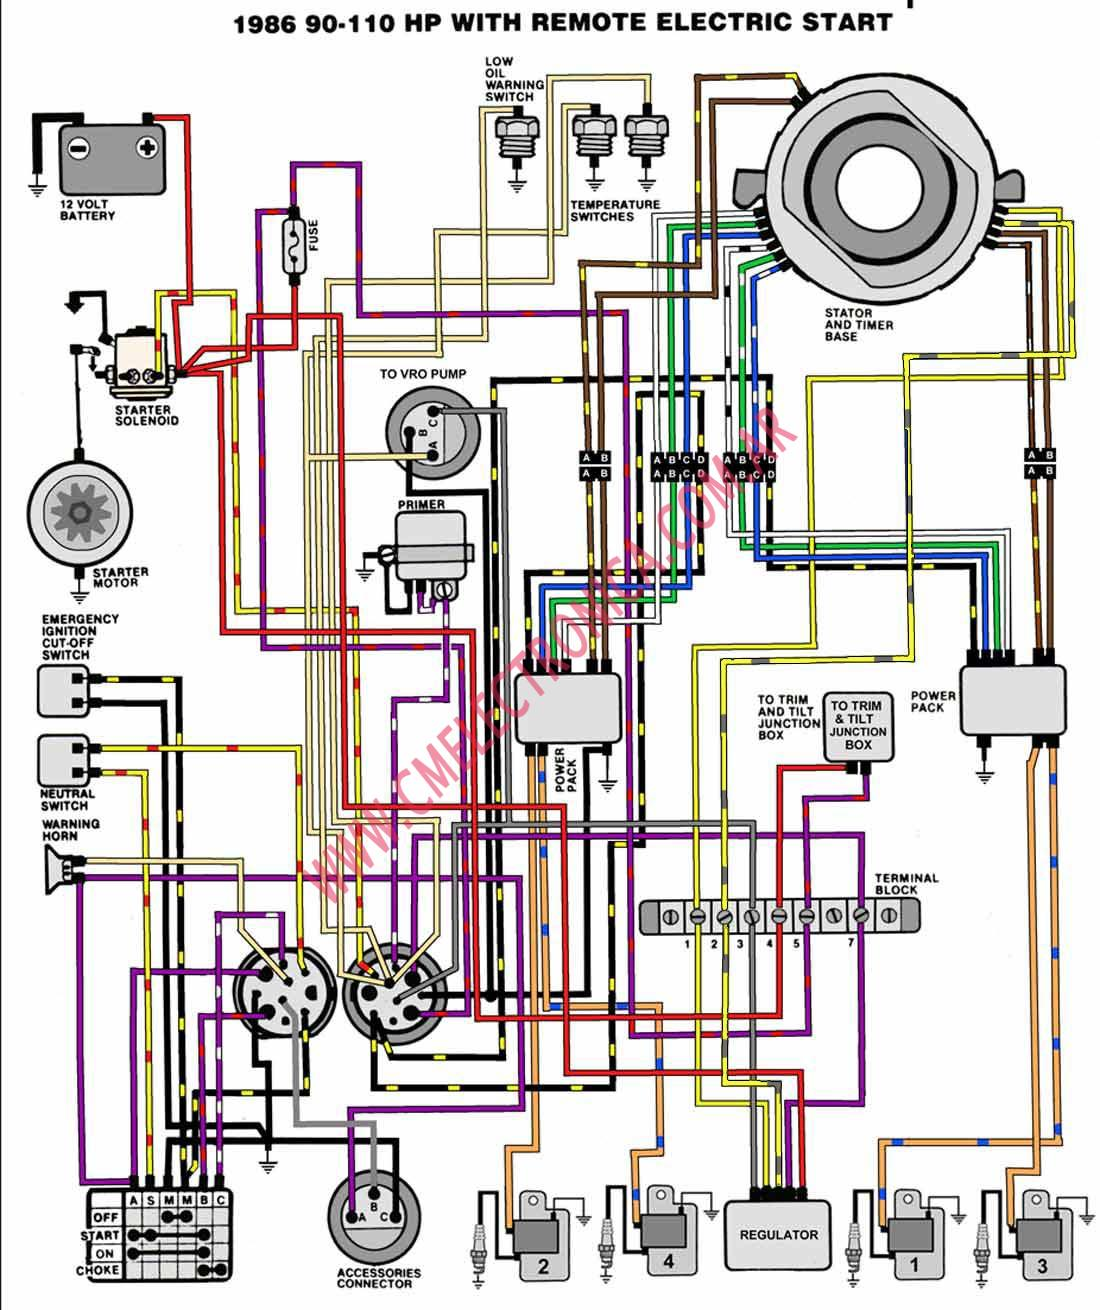 hight resolution of 125 hp mercury outboard wiring diagram wiring diagram z11990 mercury 115 hp outboard parts diagram wiring